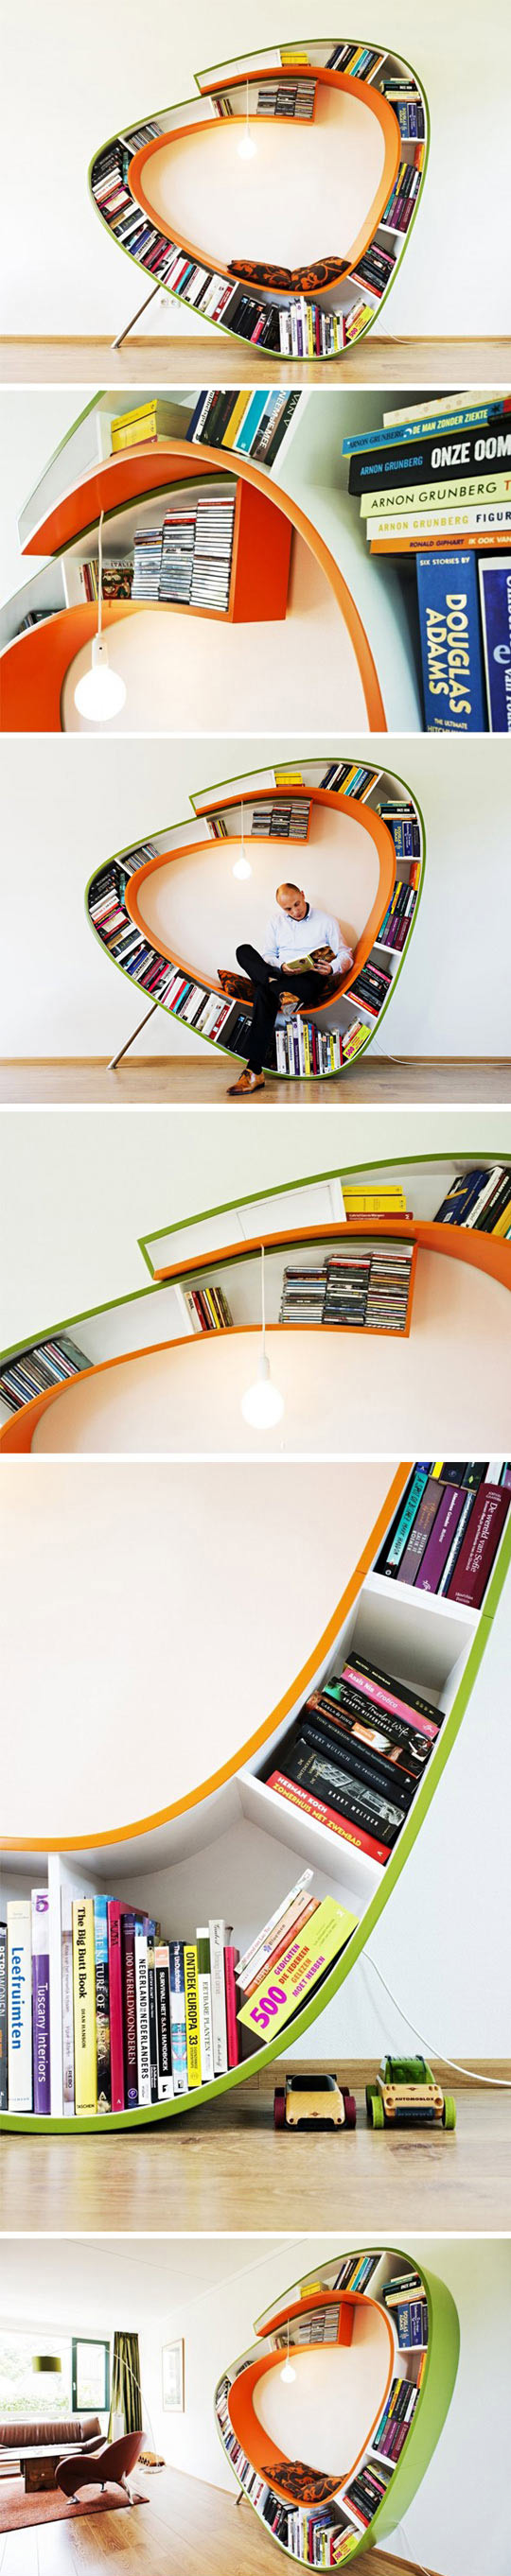 Book Chair Design Pinterest Bomb Drinks Drinks Cabinet - Bookchair combined with bookshelf